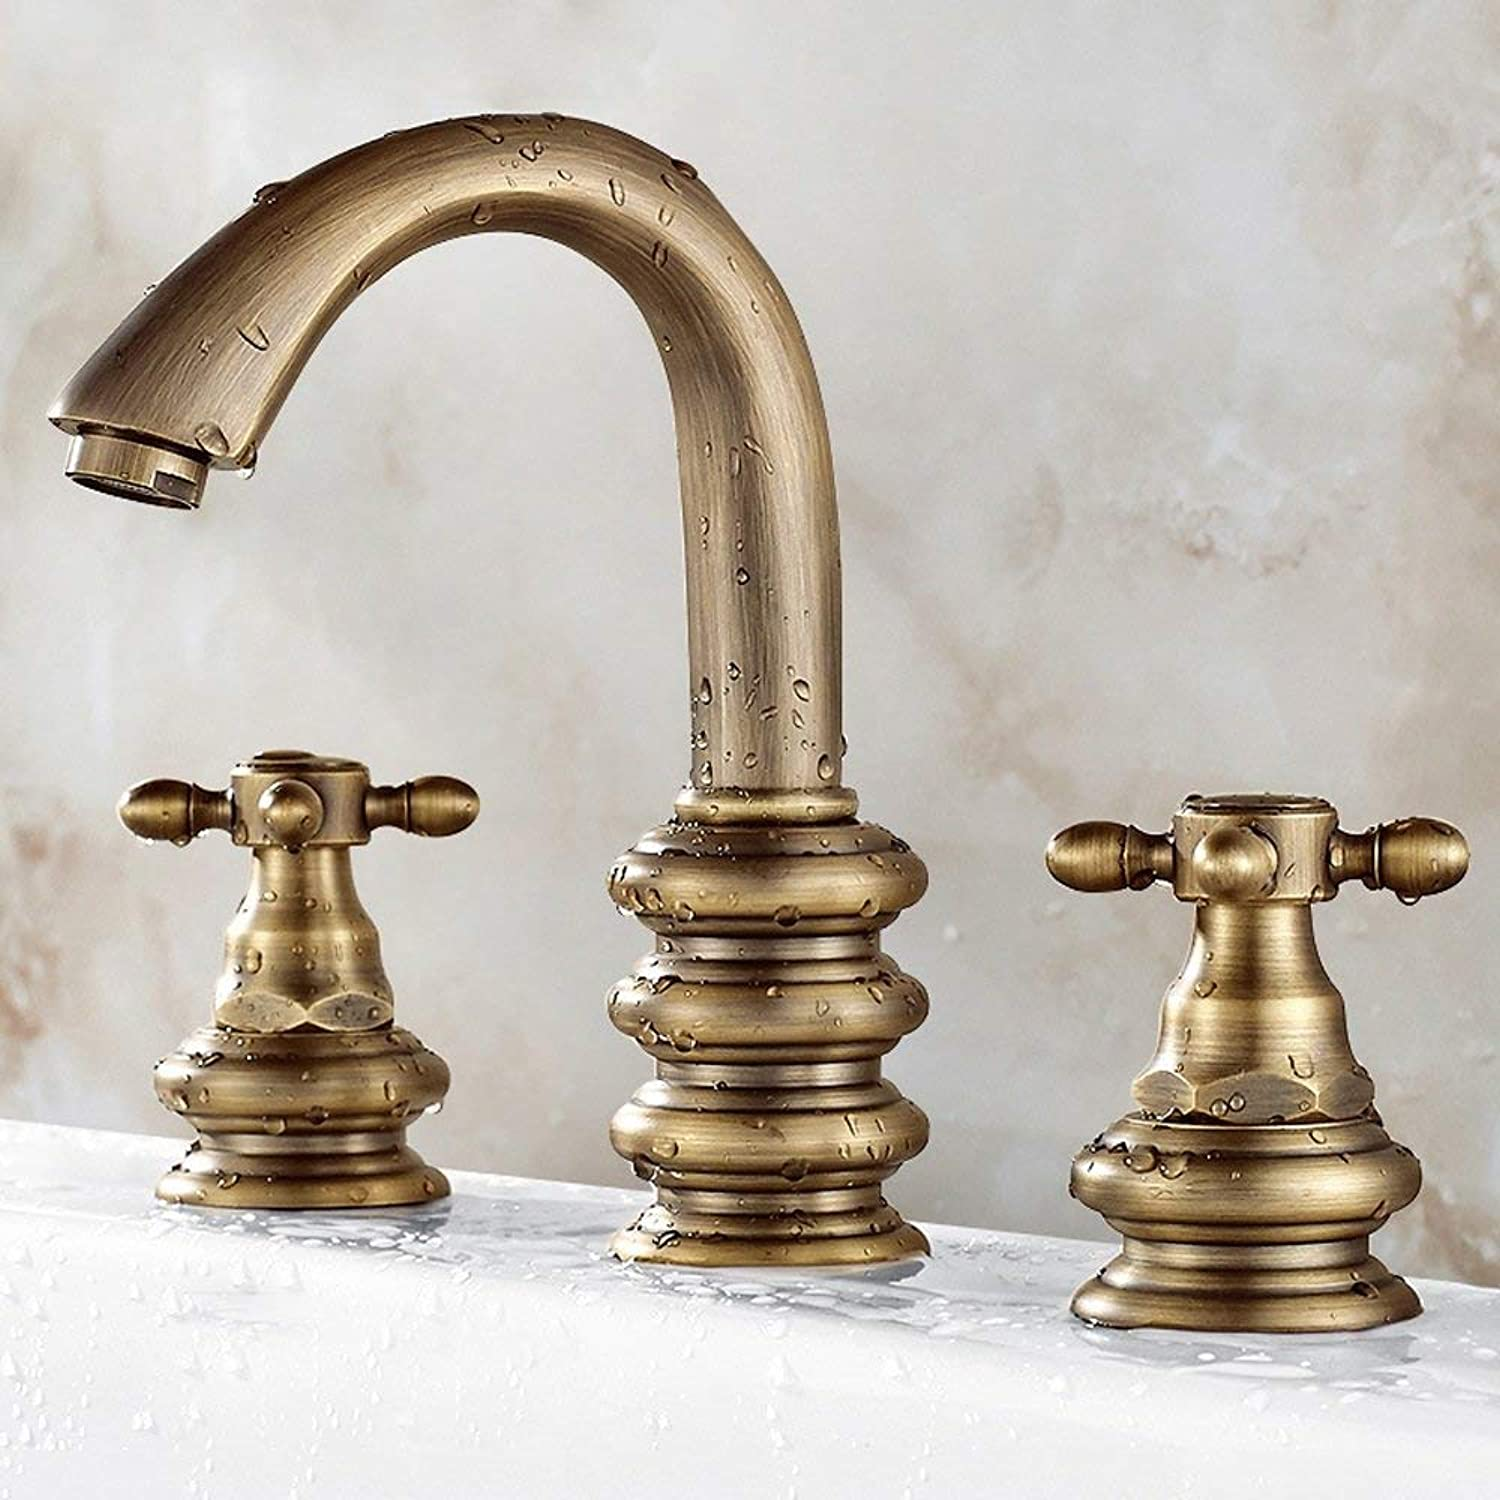 European Style All Bronze Antique Design Process Faucet Bathroom Double Handle Sink hot and Cold Water Three Holes Bathroom Sink Mixer Toilet Mixer